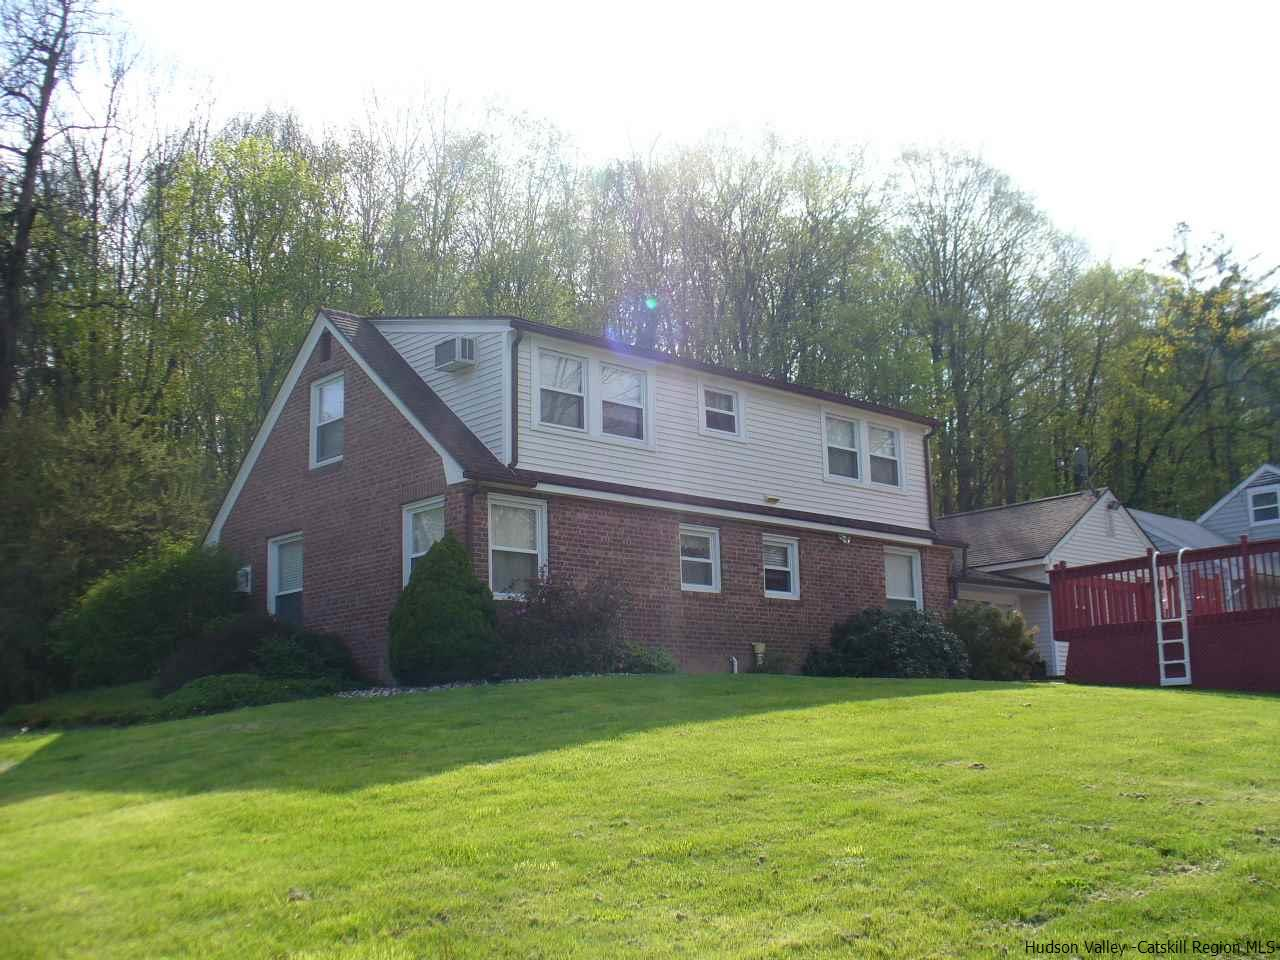 Single Family Home for Sale at 2 Beechmont Avenue 2 Beechmont Avenue Ellenville, New York 12428 United States